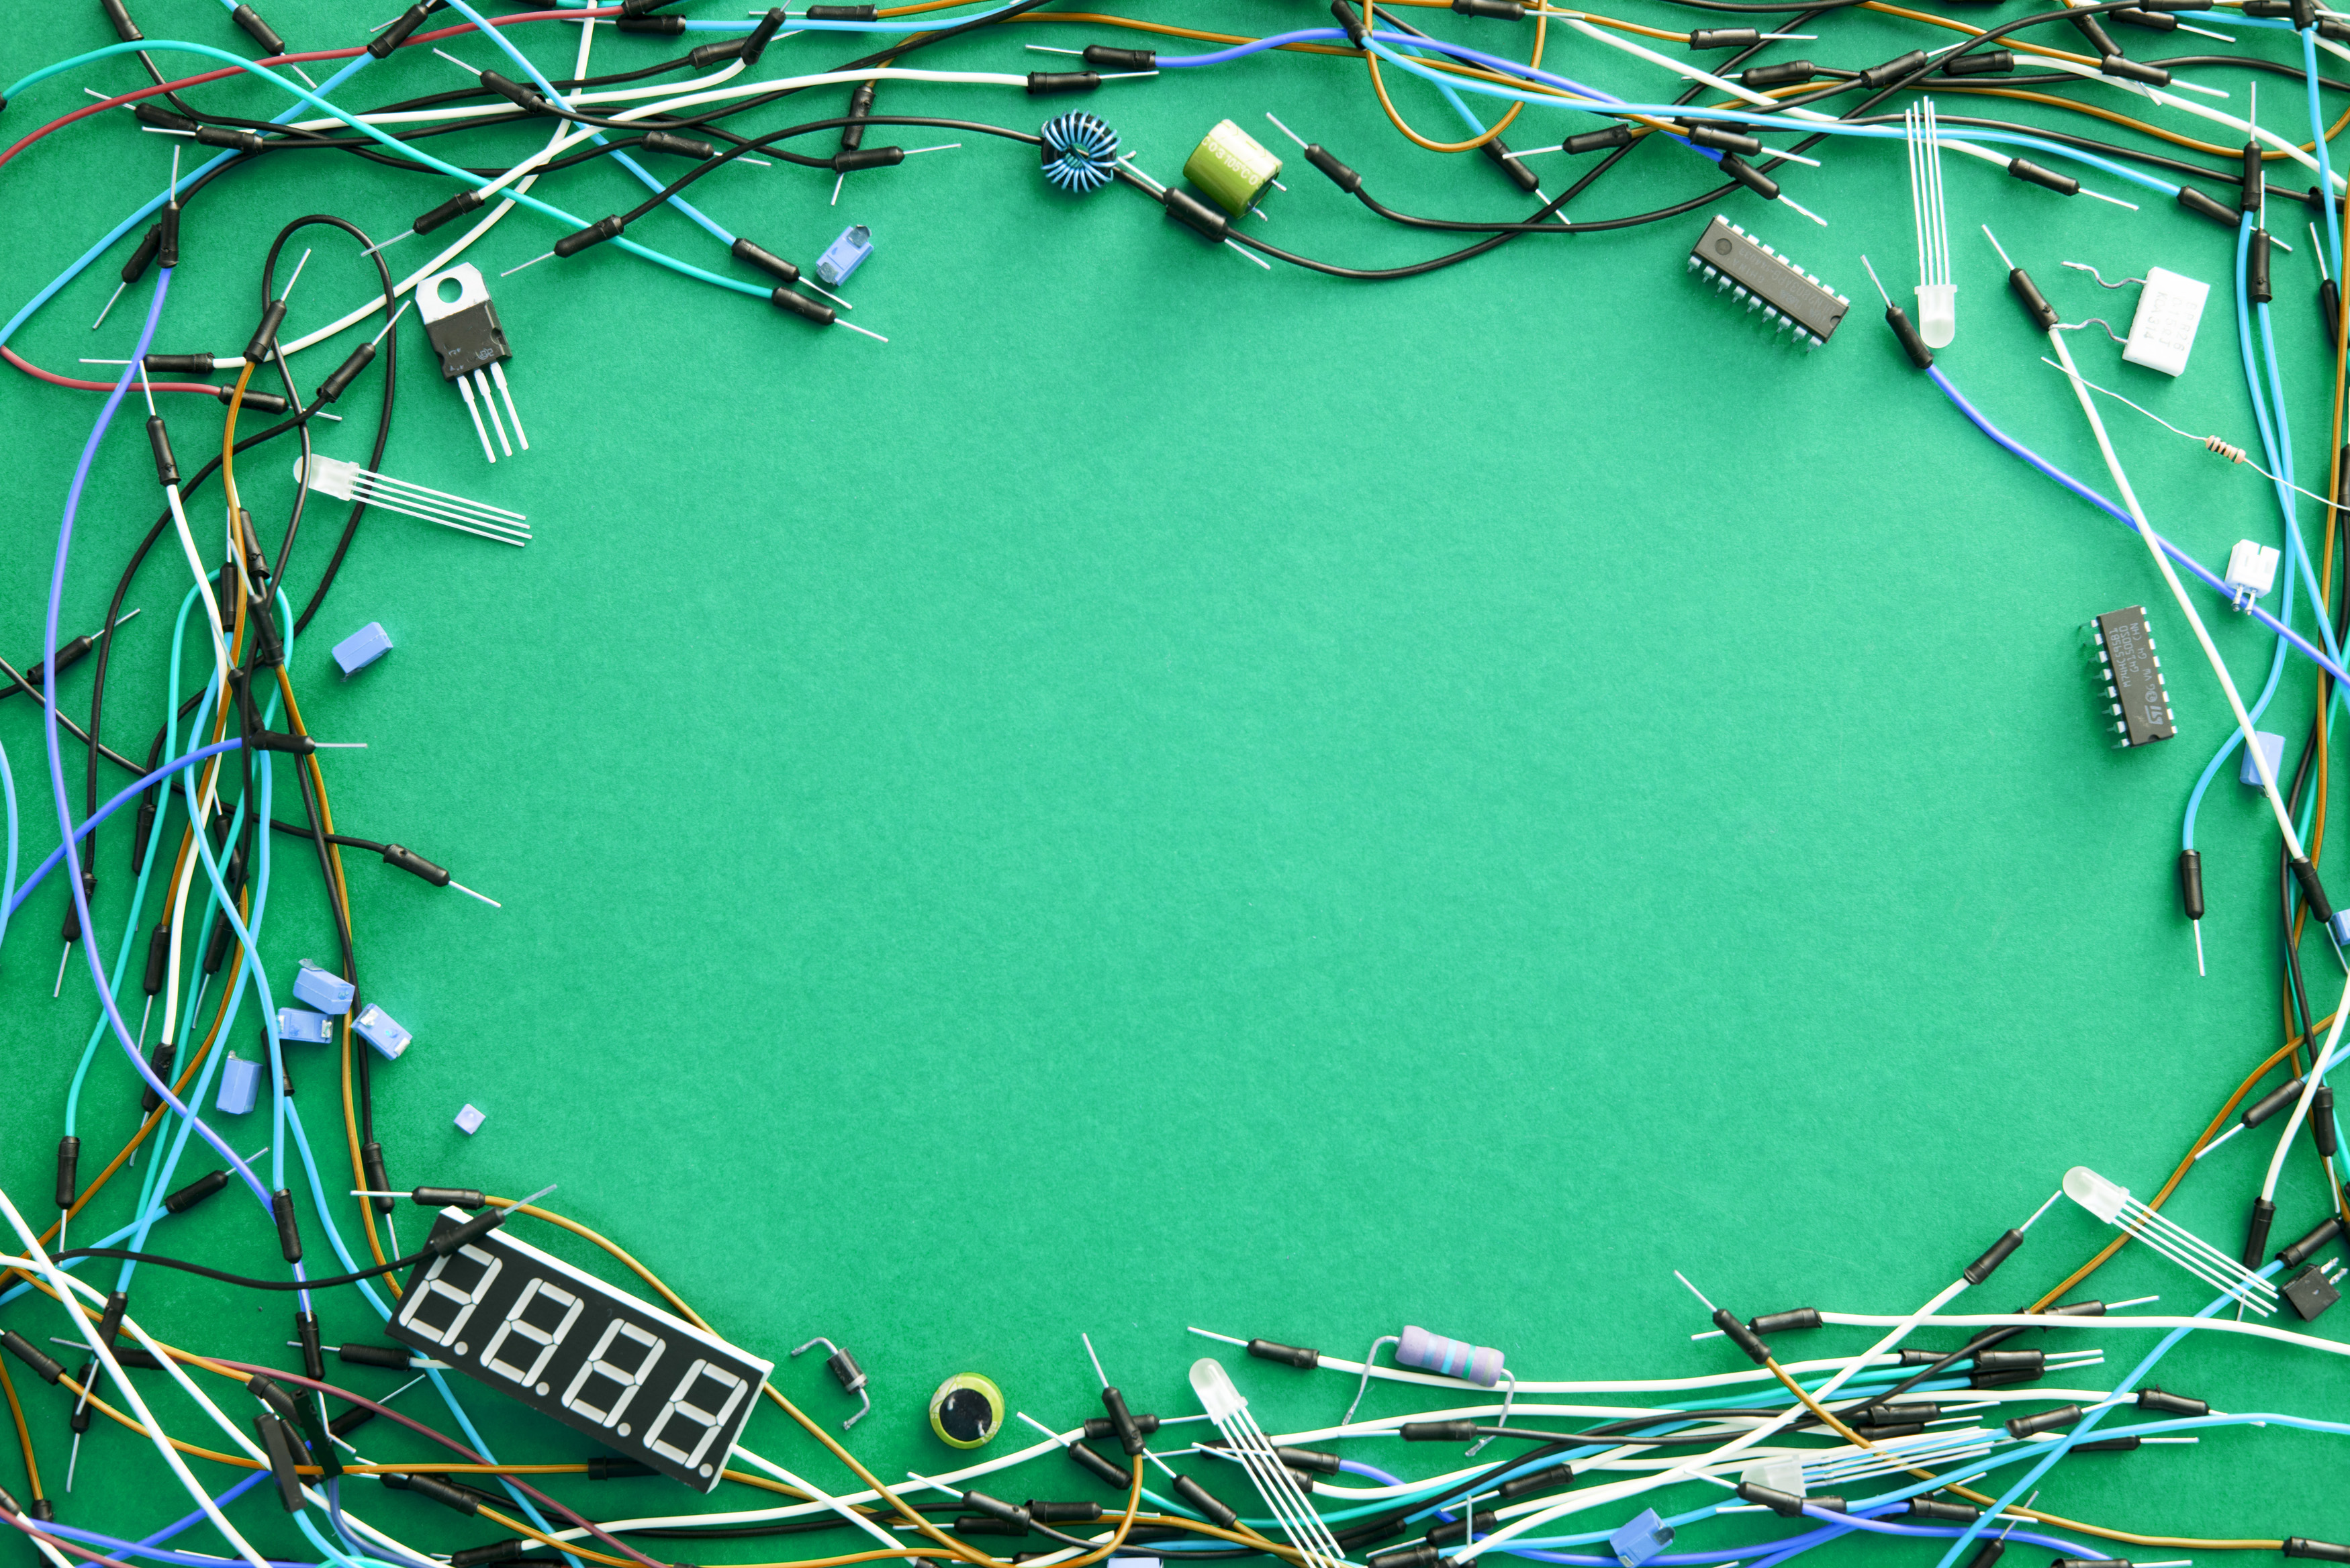 Stock Photo 13100 Background of electronic wires freeimageslive 3500x2336